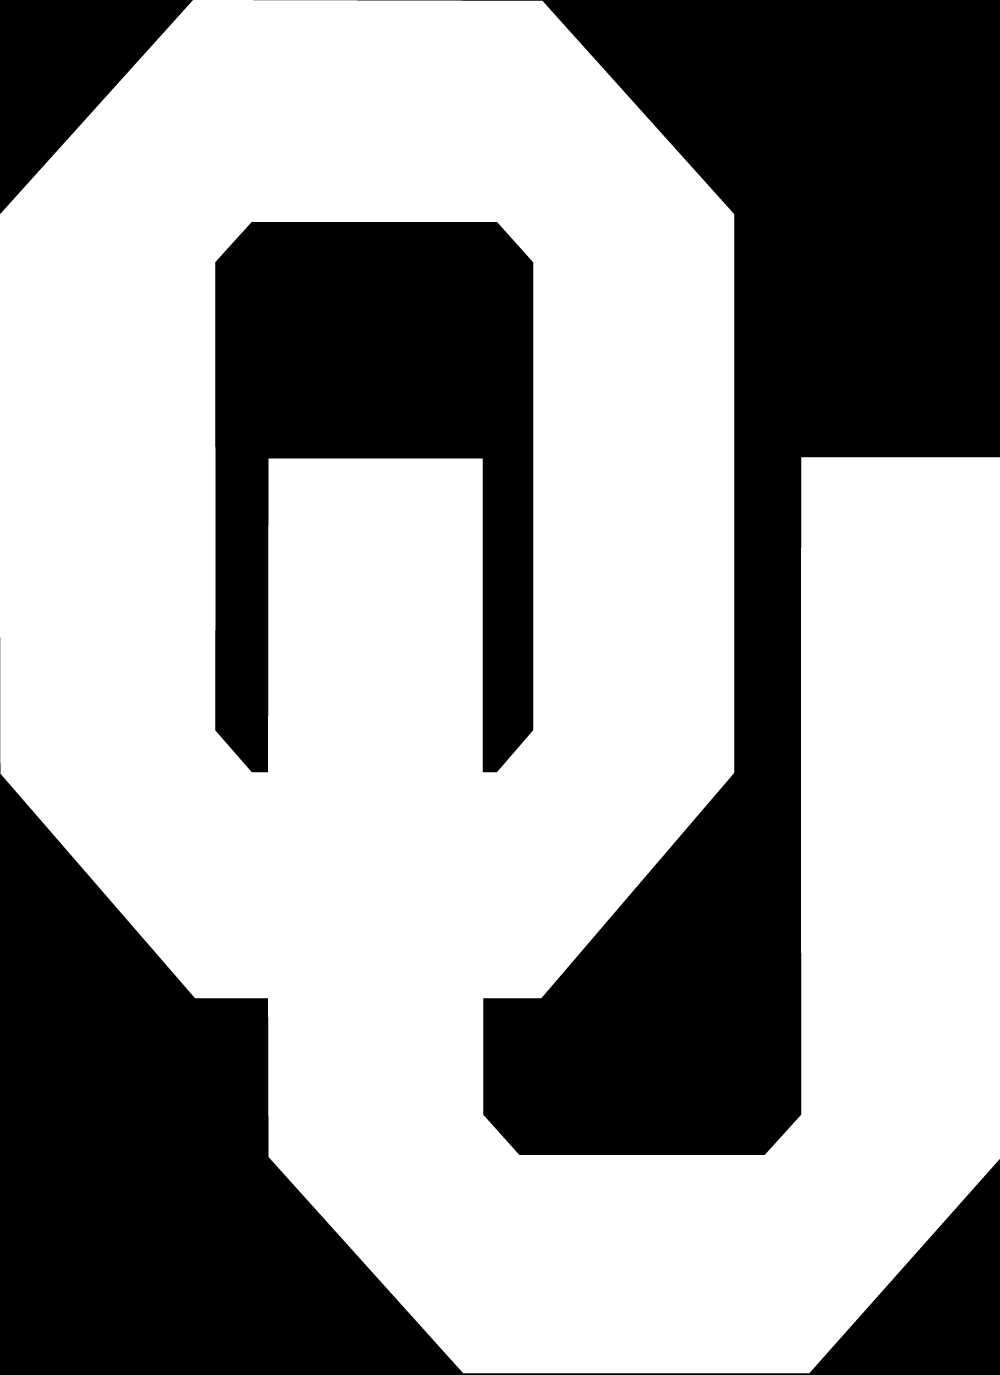 University Of Oklahoma PNG - 77444